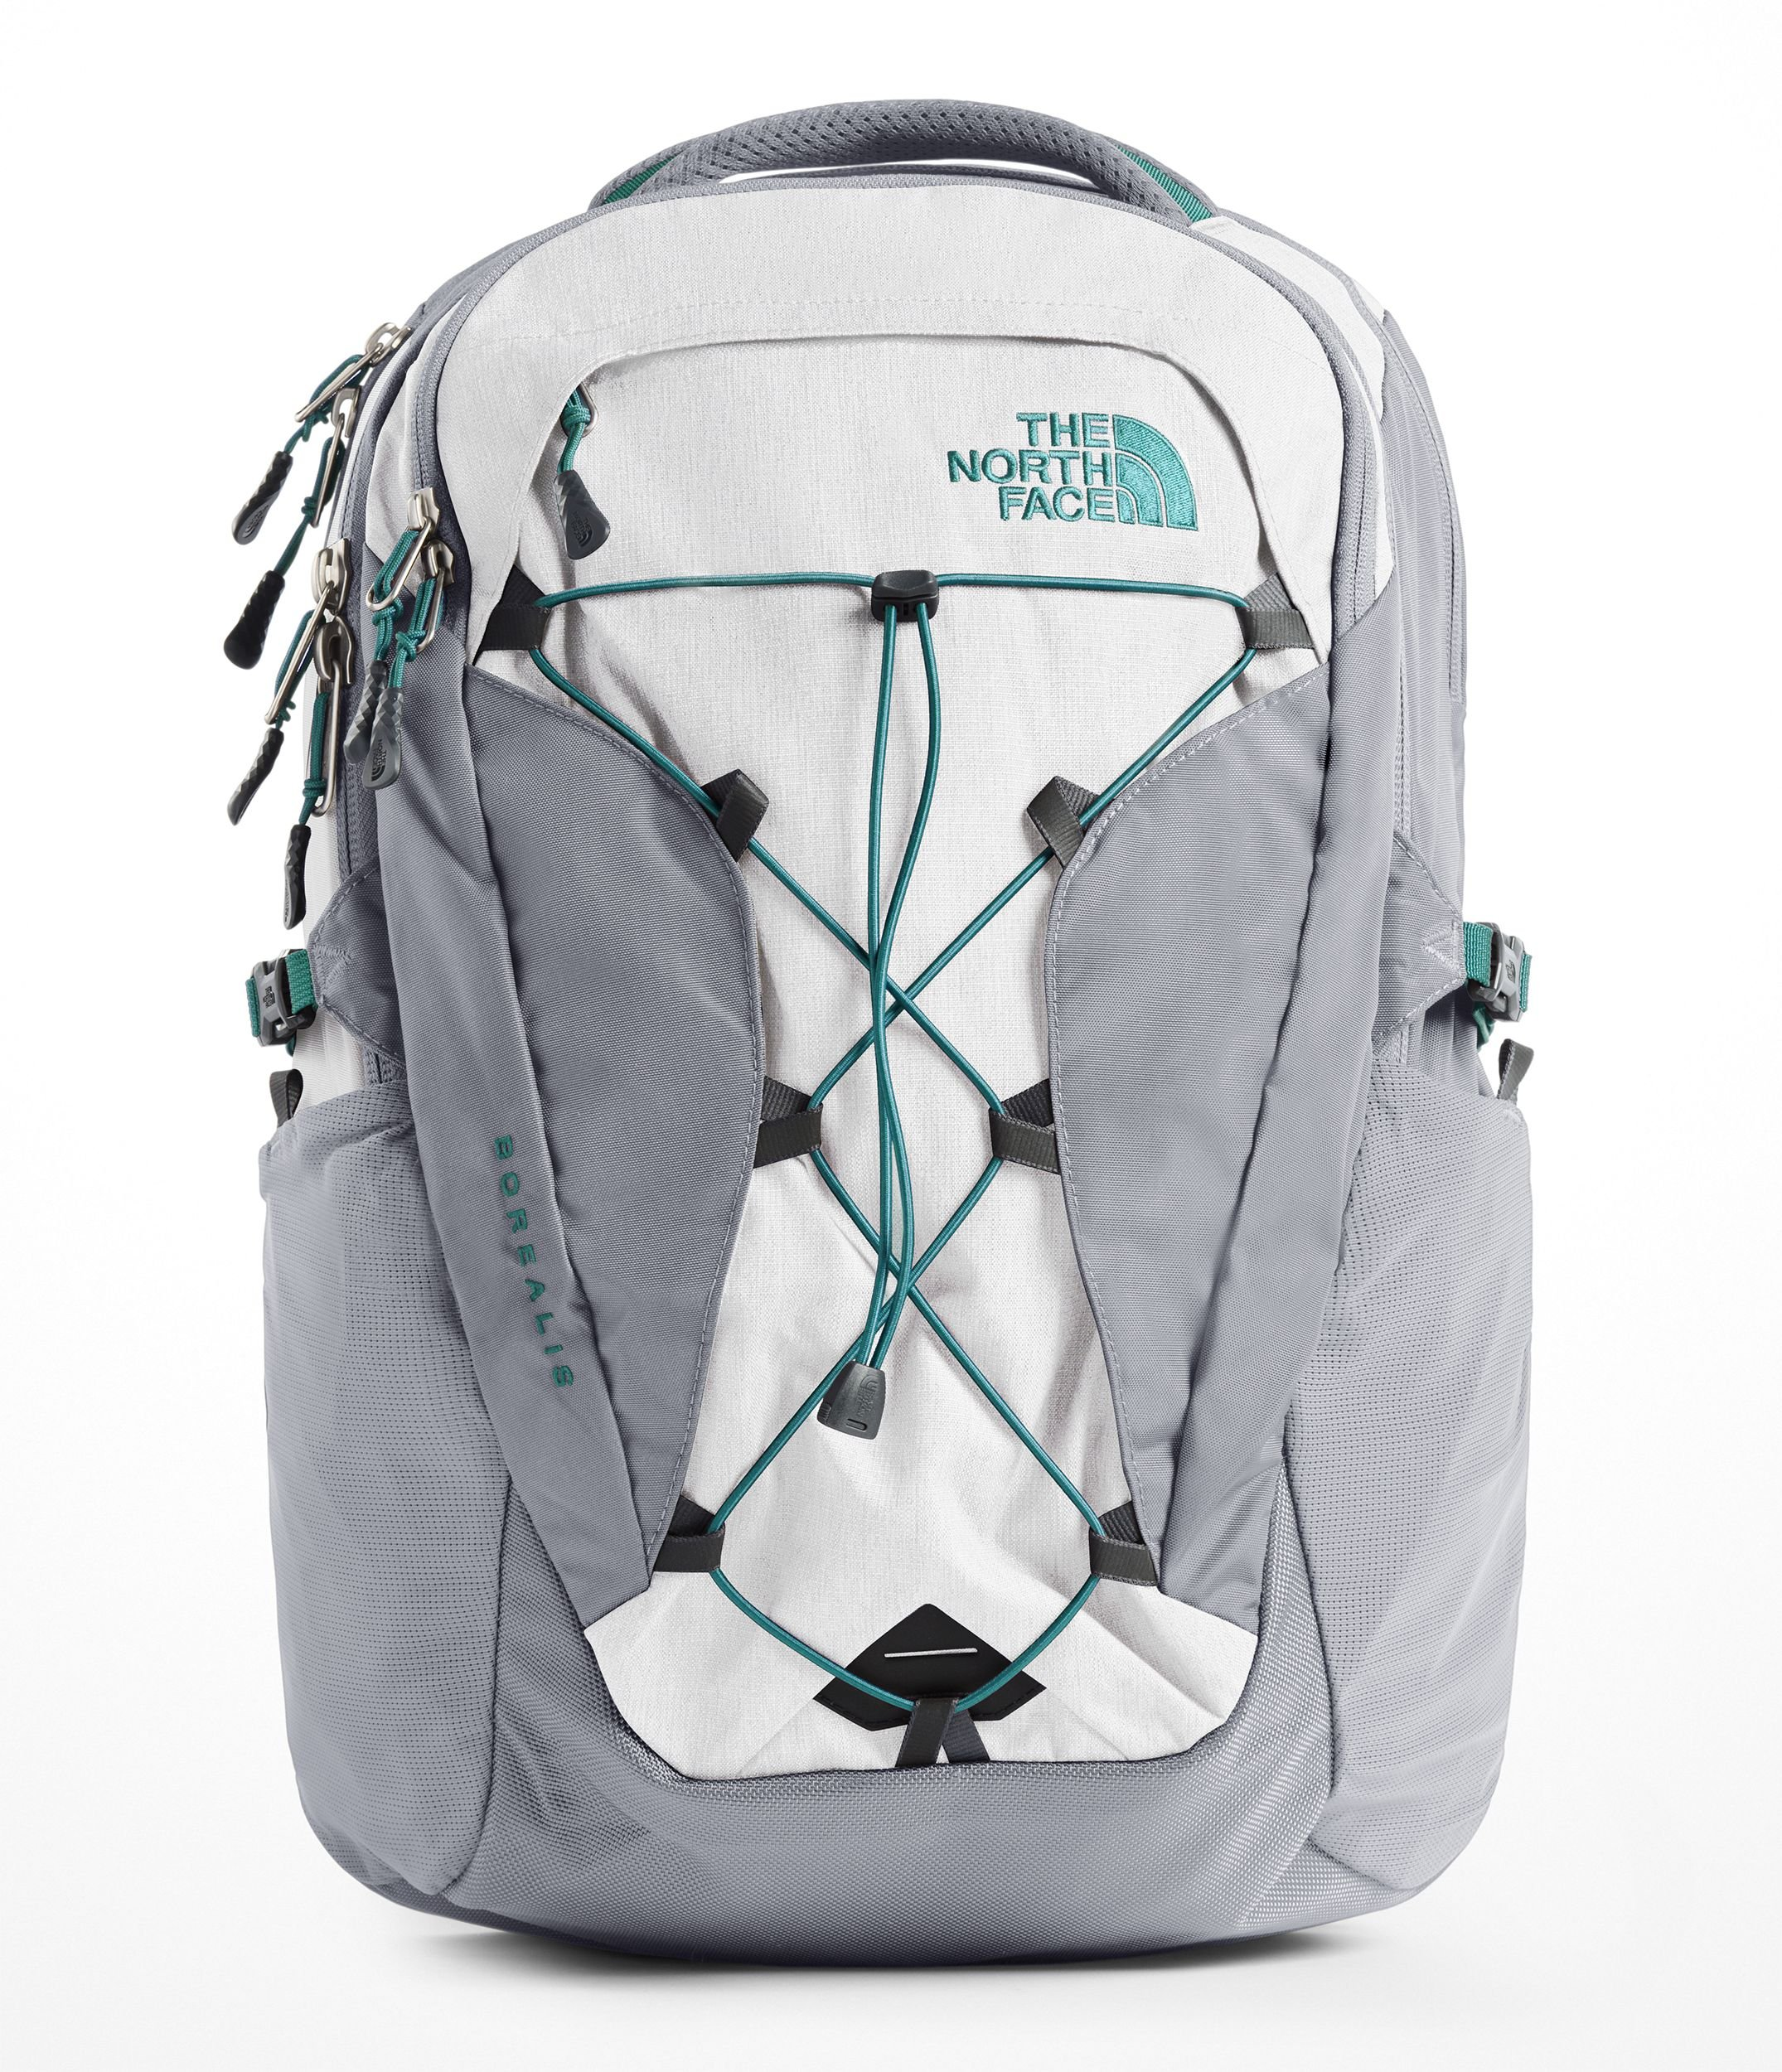 The North Face Women's Borealis Backpack, Tin Grey/Mid Grey by The North Face